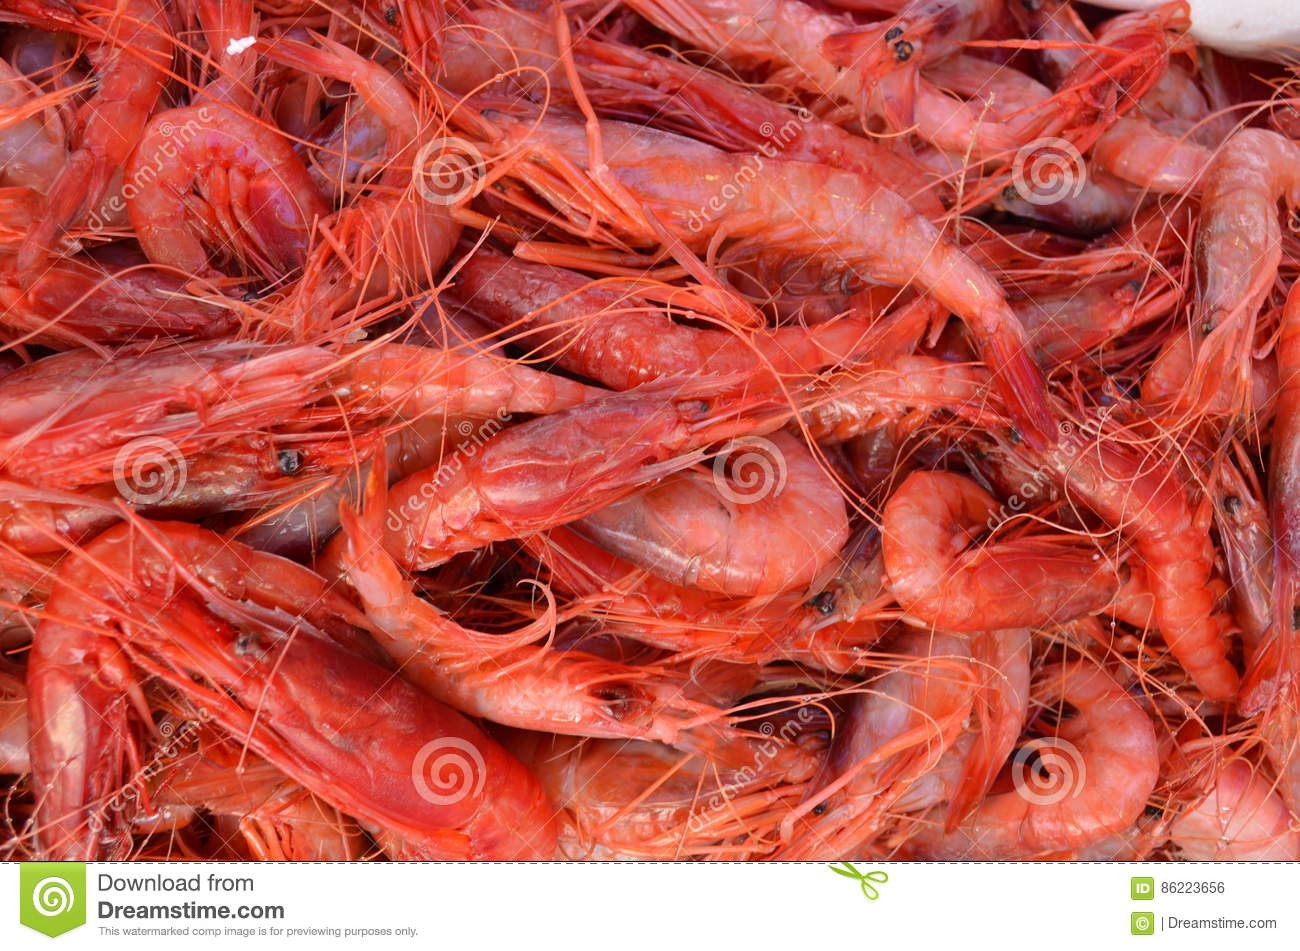 Red Big King Shrimps Prawns In Fish Market Selling In Turkey